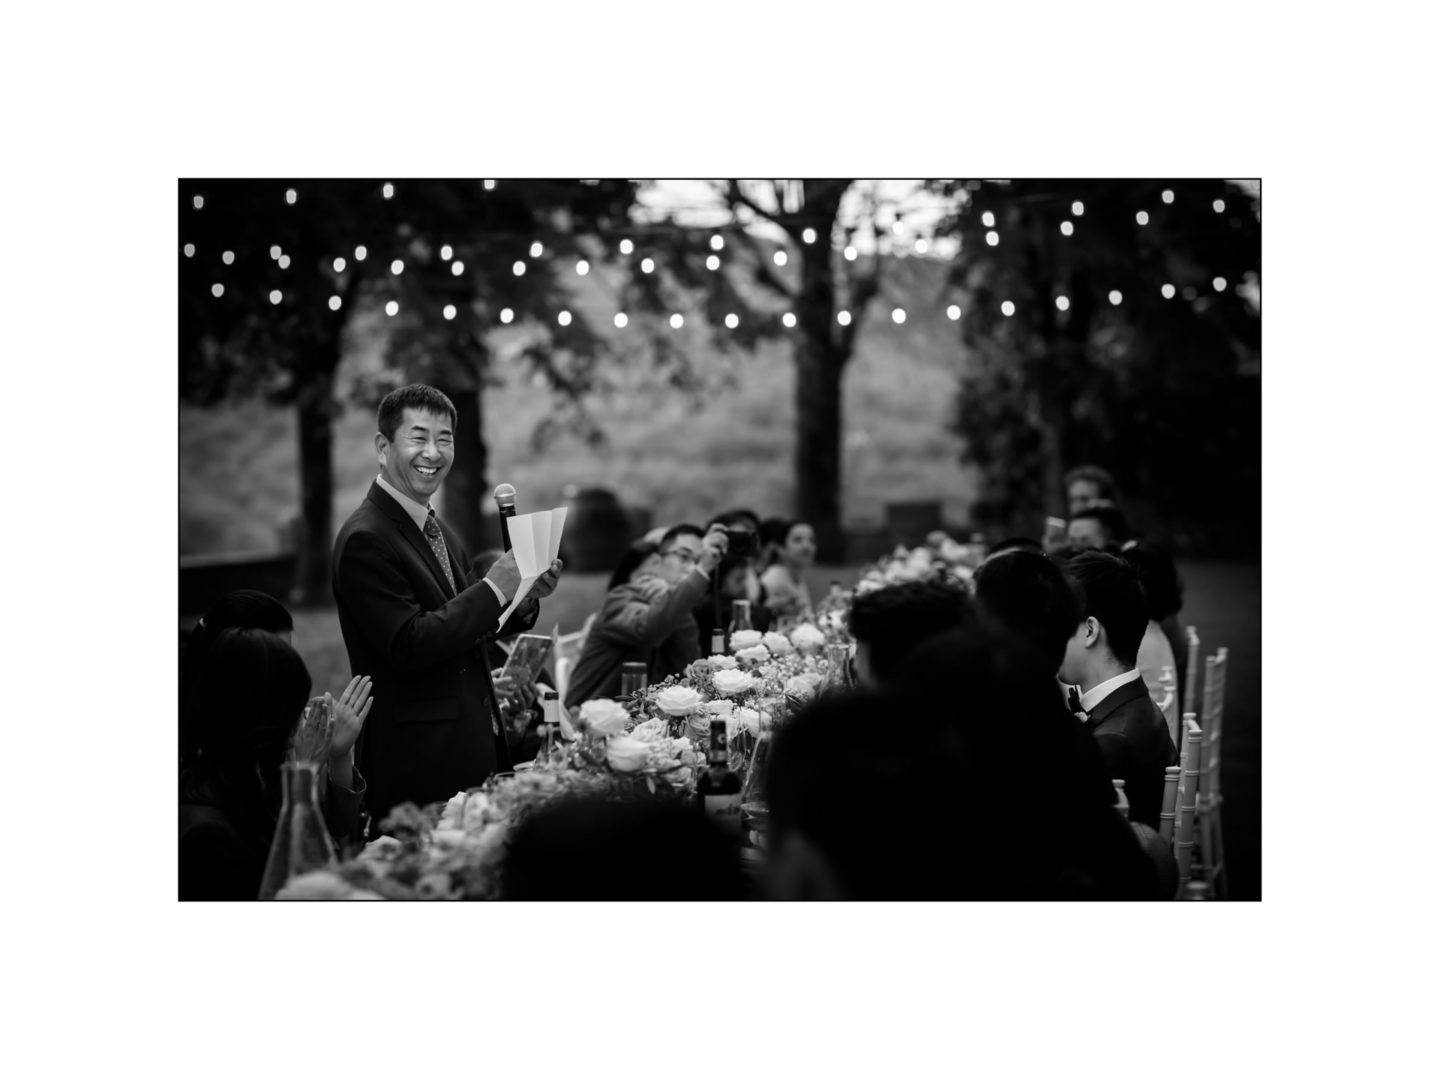 castello-di-meleto-david-bastianoni-photographer-00039 :: Black and white wedding_ Castello di Meleto :: Luxury wedding photography - 38 :: castello-di-meleto-david-bastianoni-photographer-00039